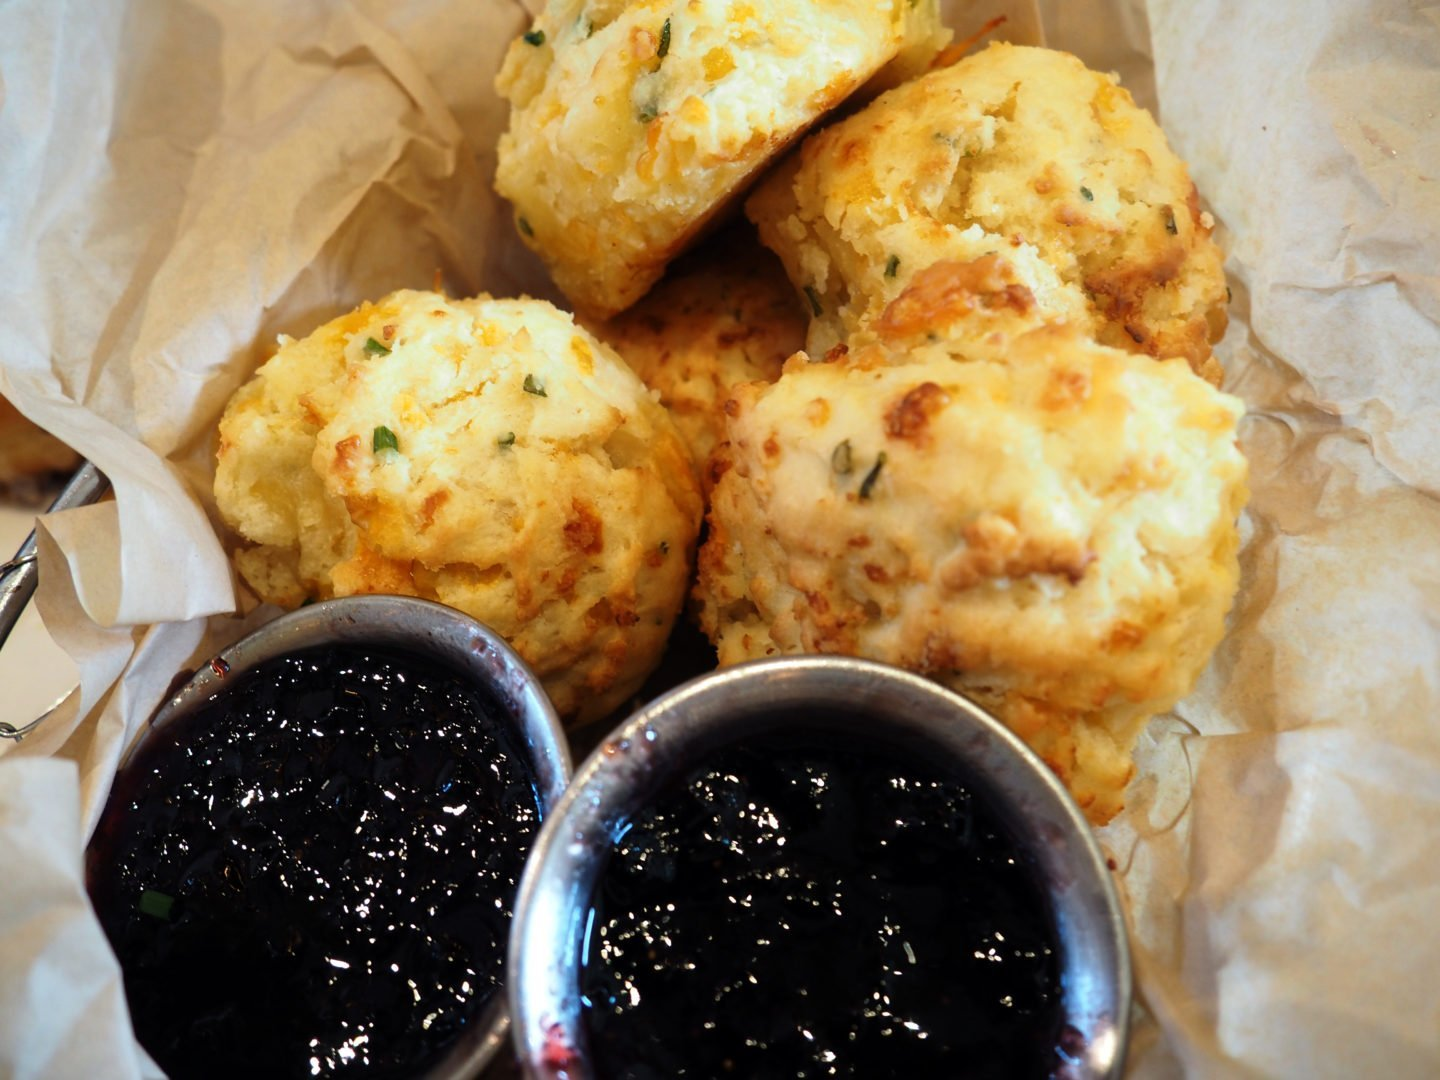 cheddar biscuits and blackberry jam at homecomin